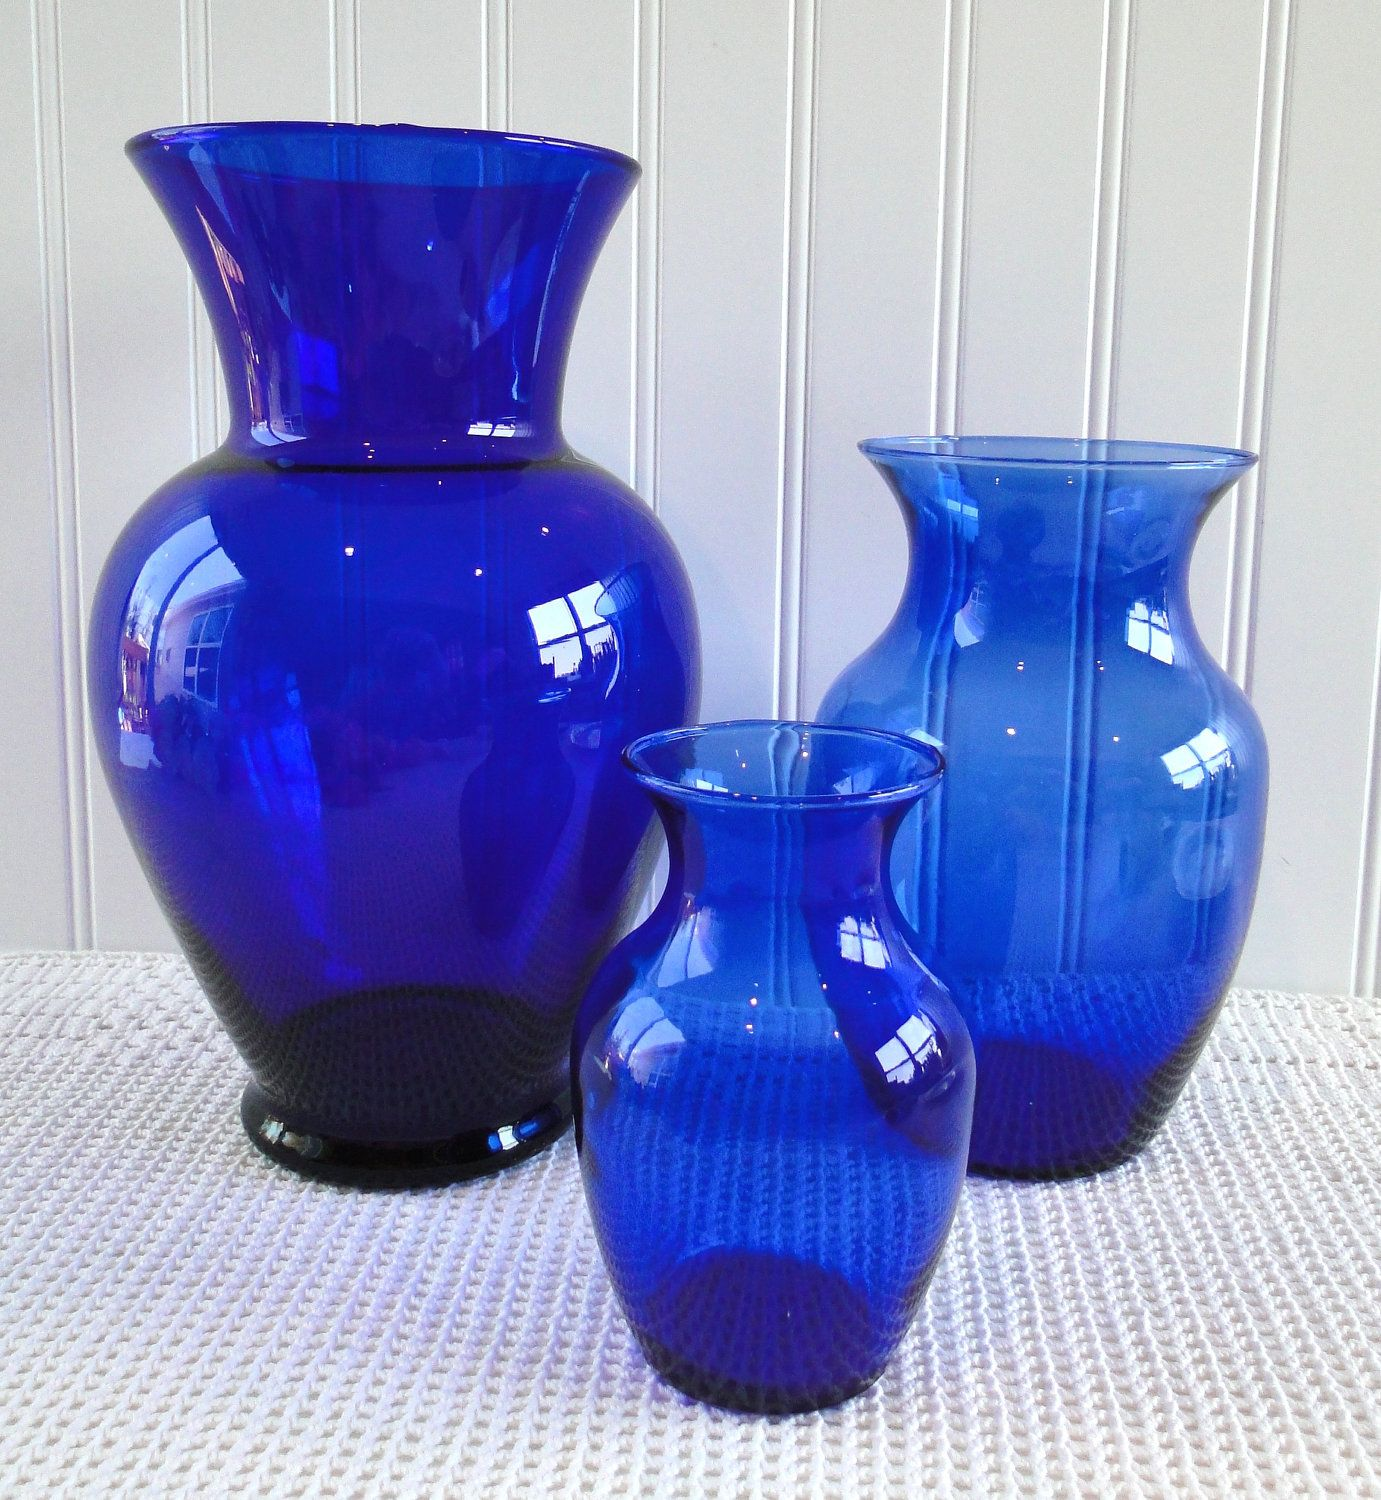 Cobalt blue vases the shorter two are perfect for our